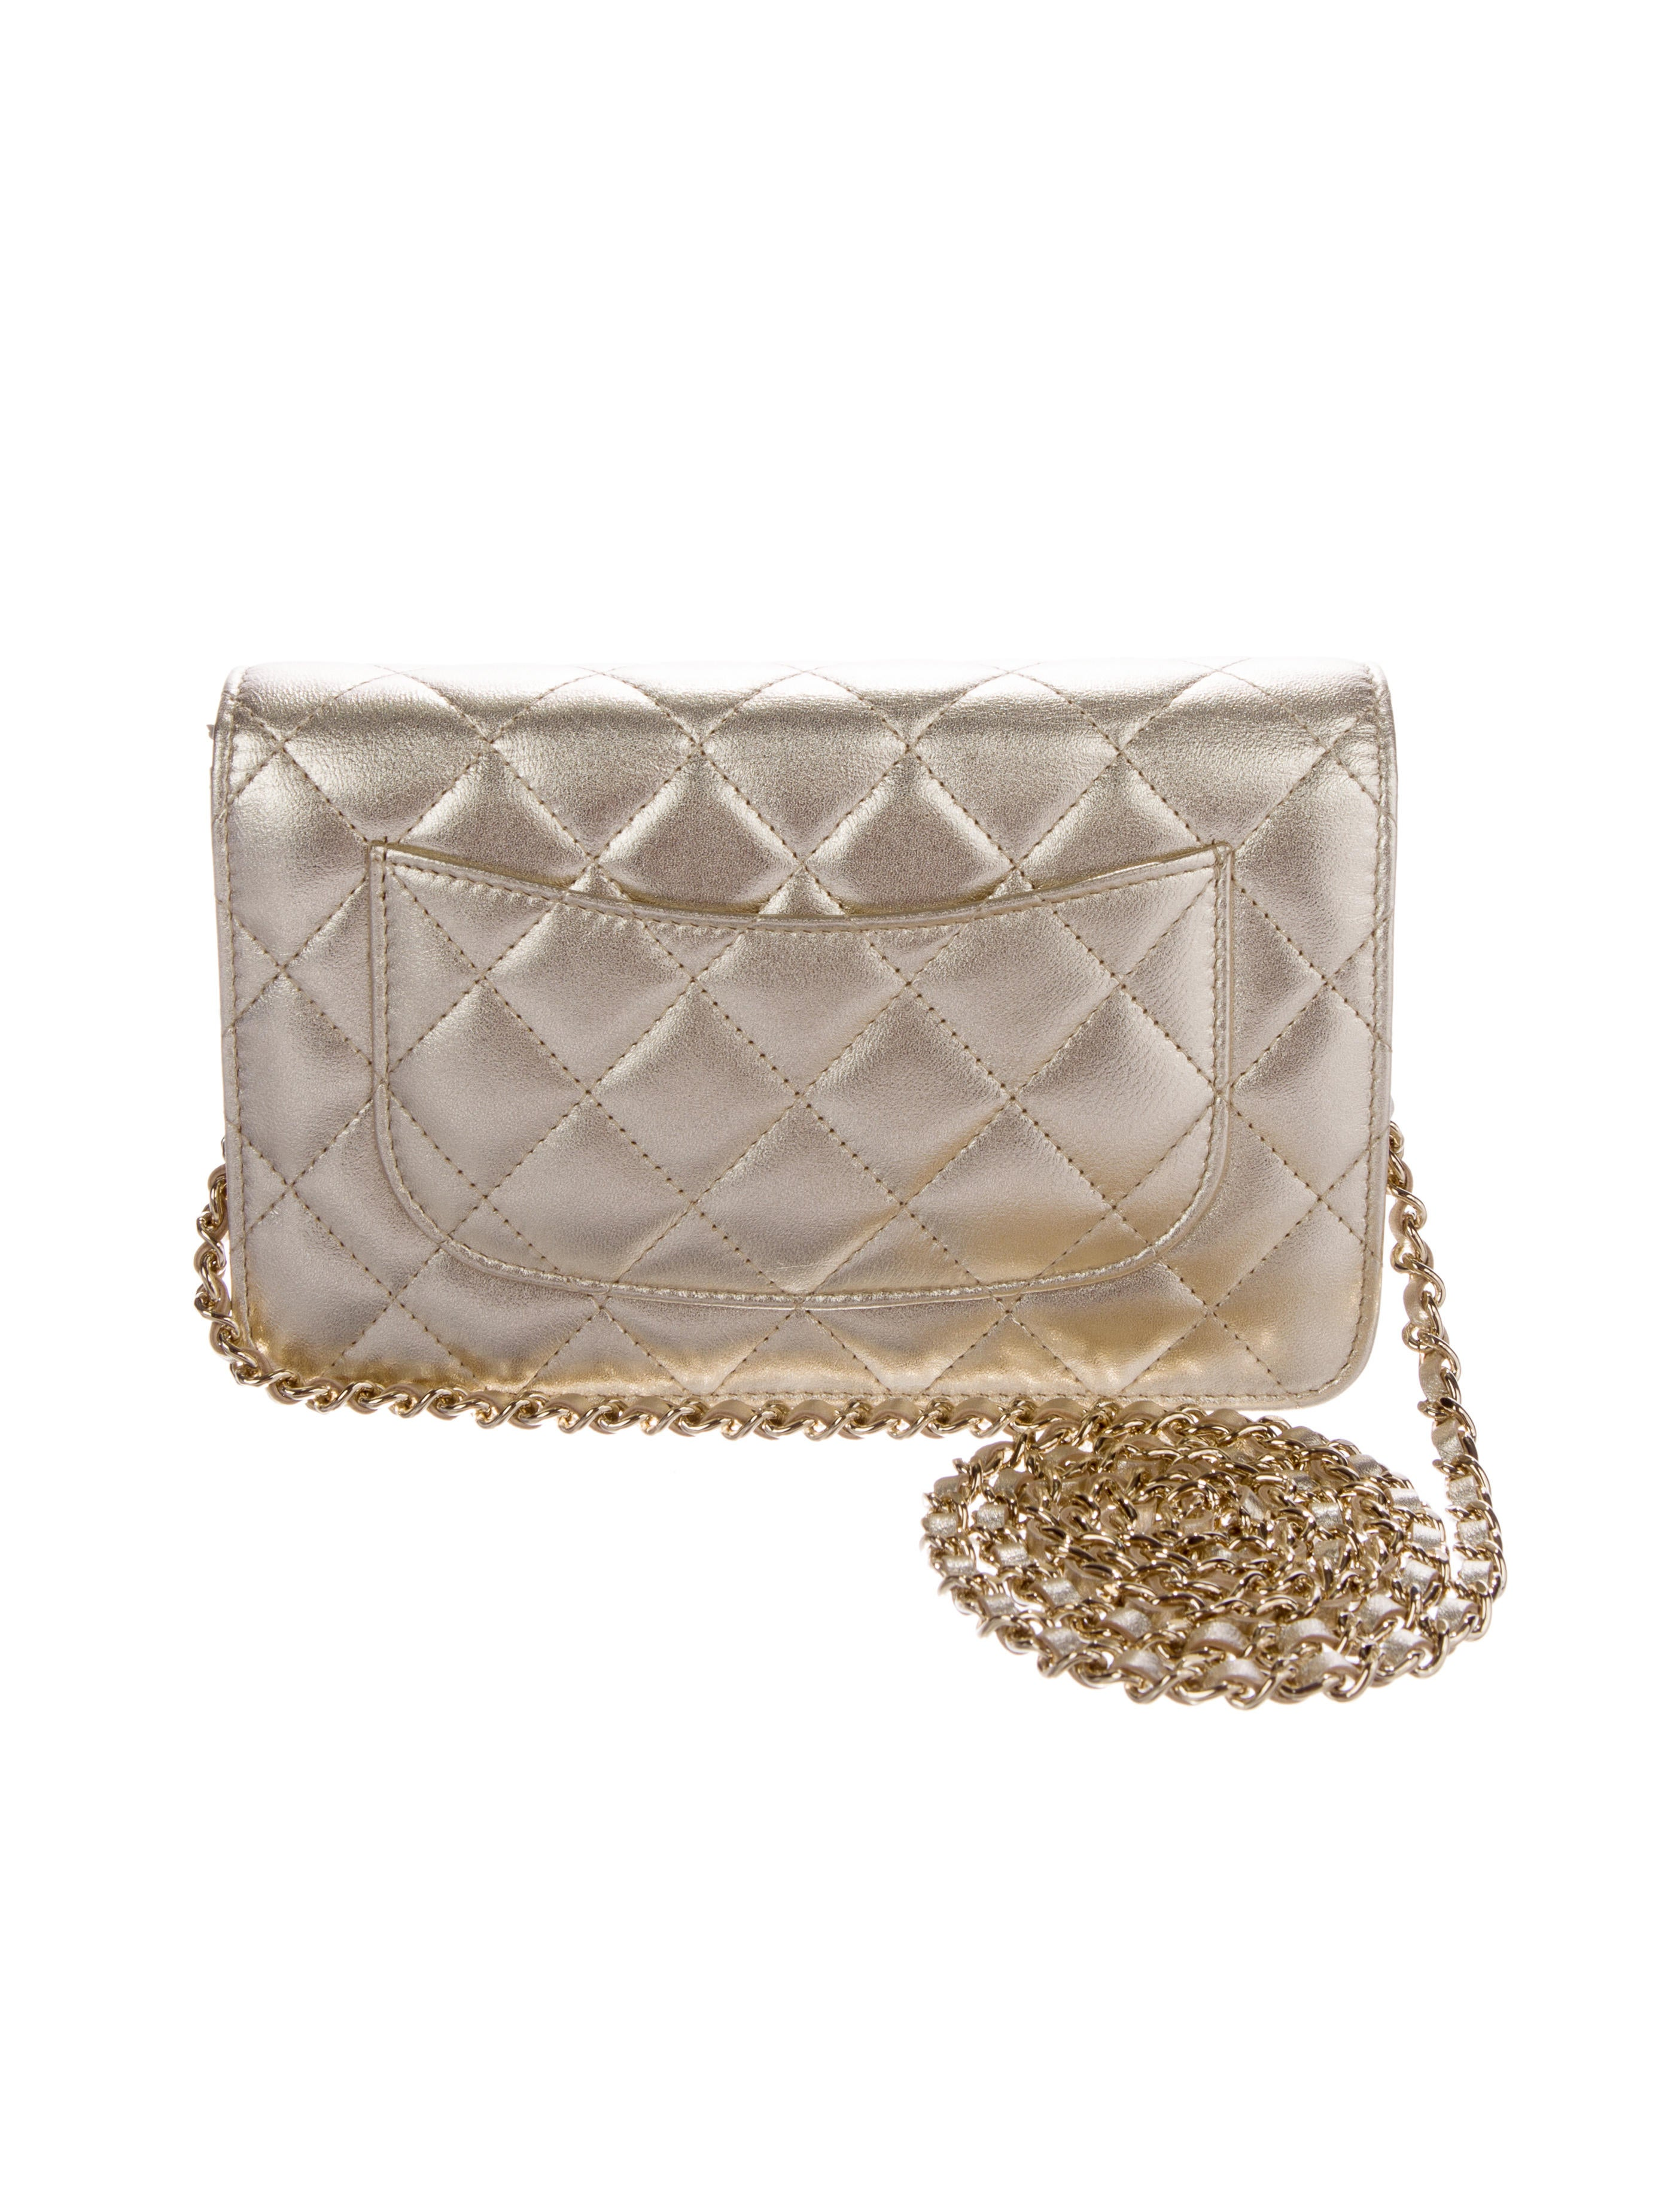 9cd1fe3ebea8 Chanel 2017 Lambskin Quilted Wallet on Chain - Handbags .